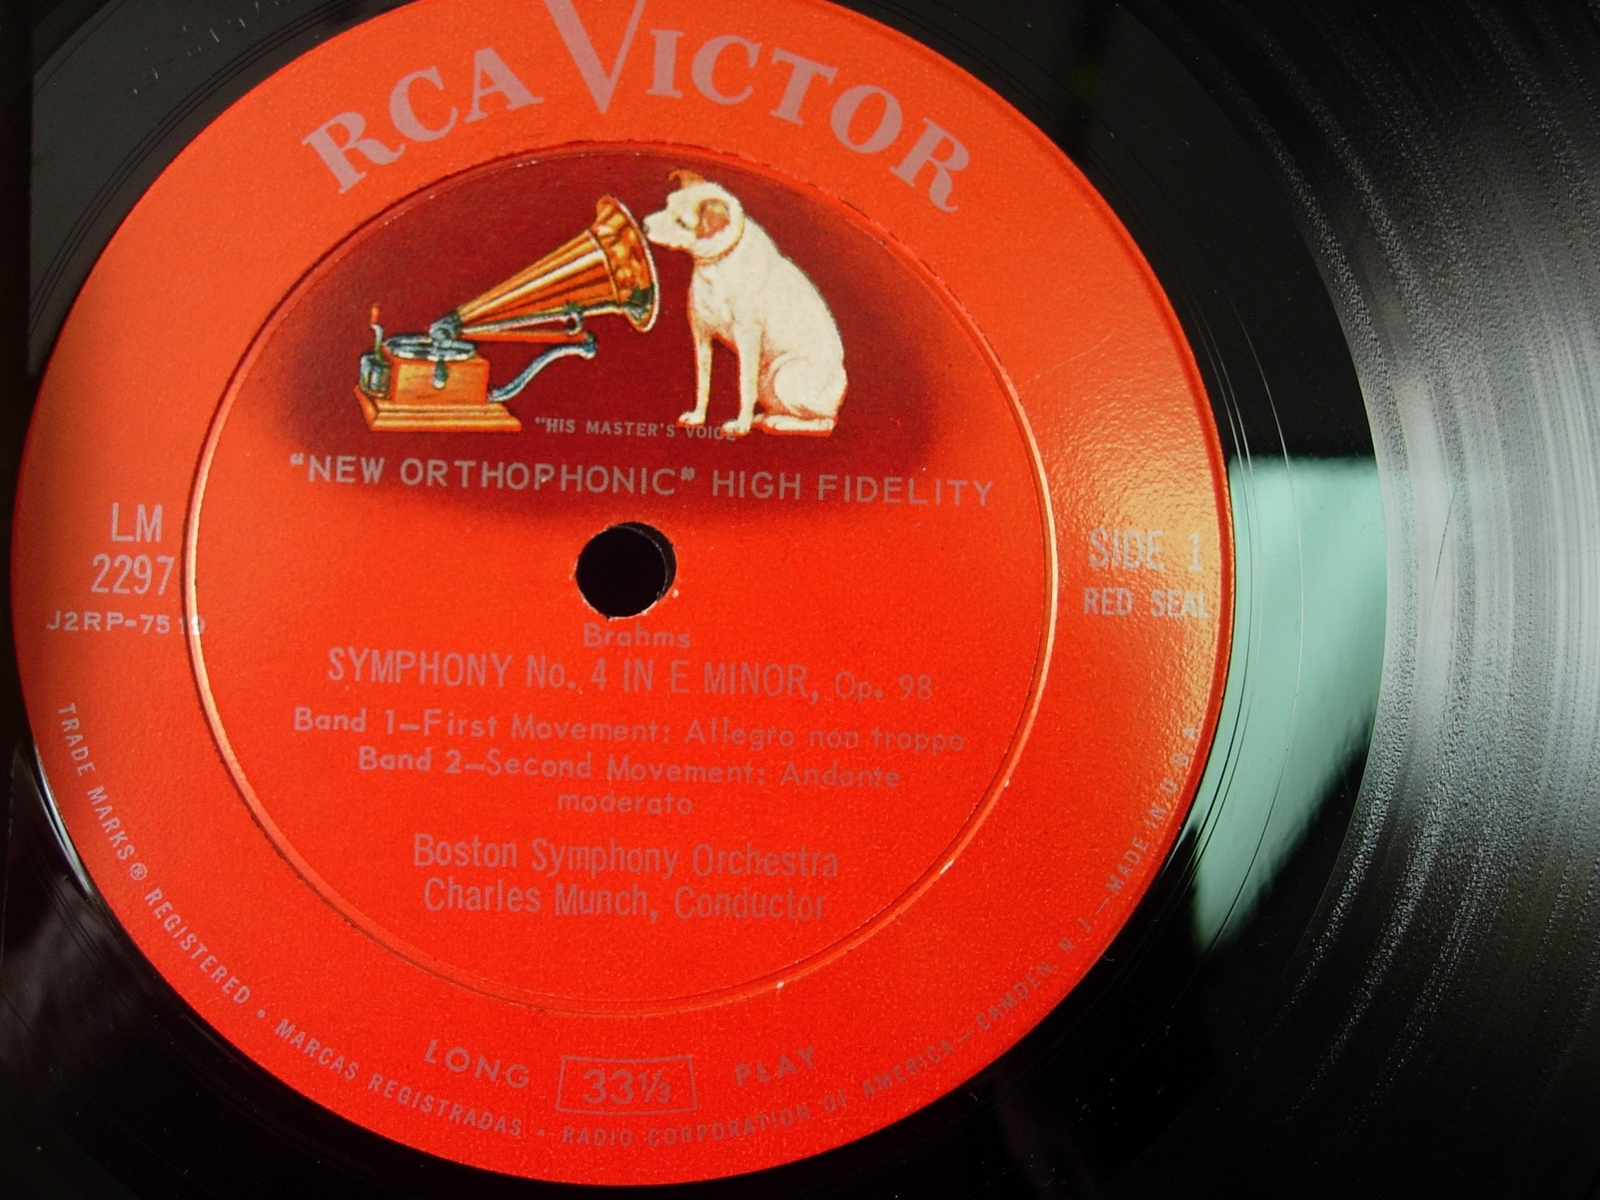 Boston Symphony / Munch - BRAHMS SYMPHONY NO. 4 -RCA Victor Red Seal LM-2297